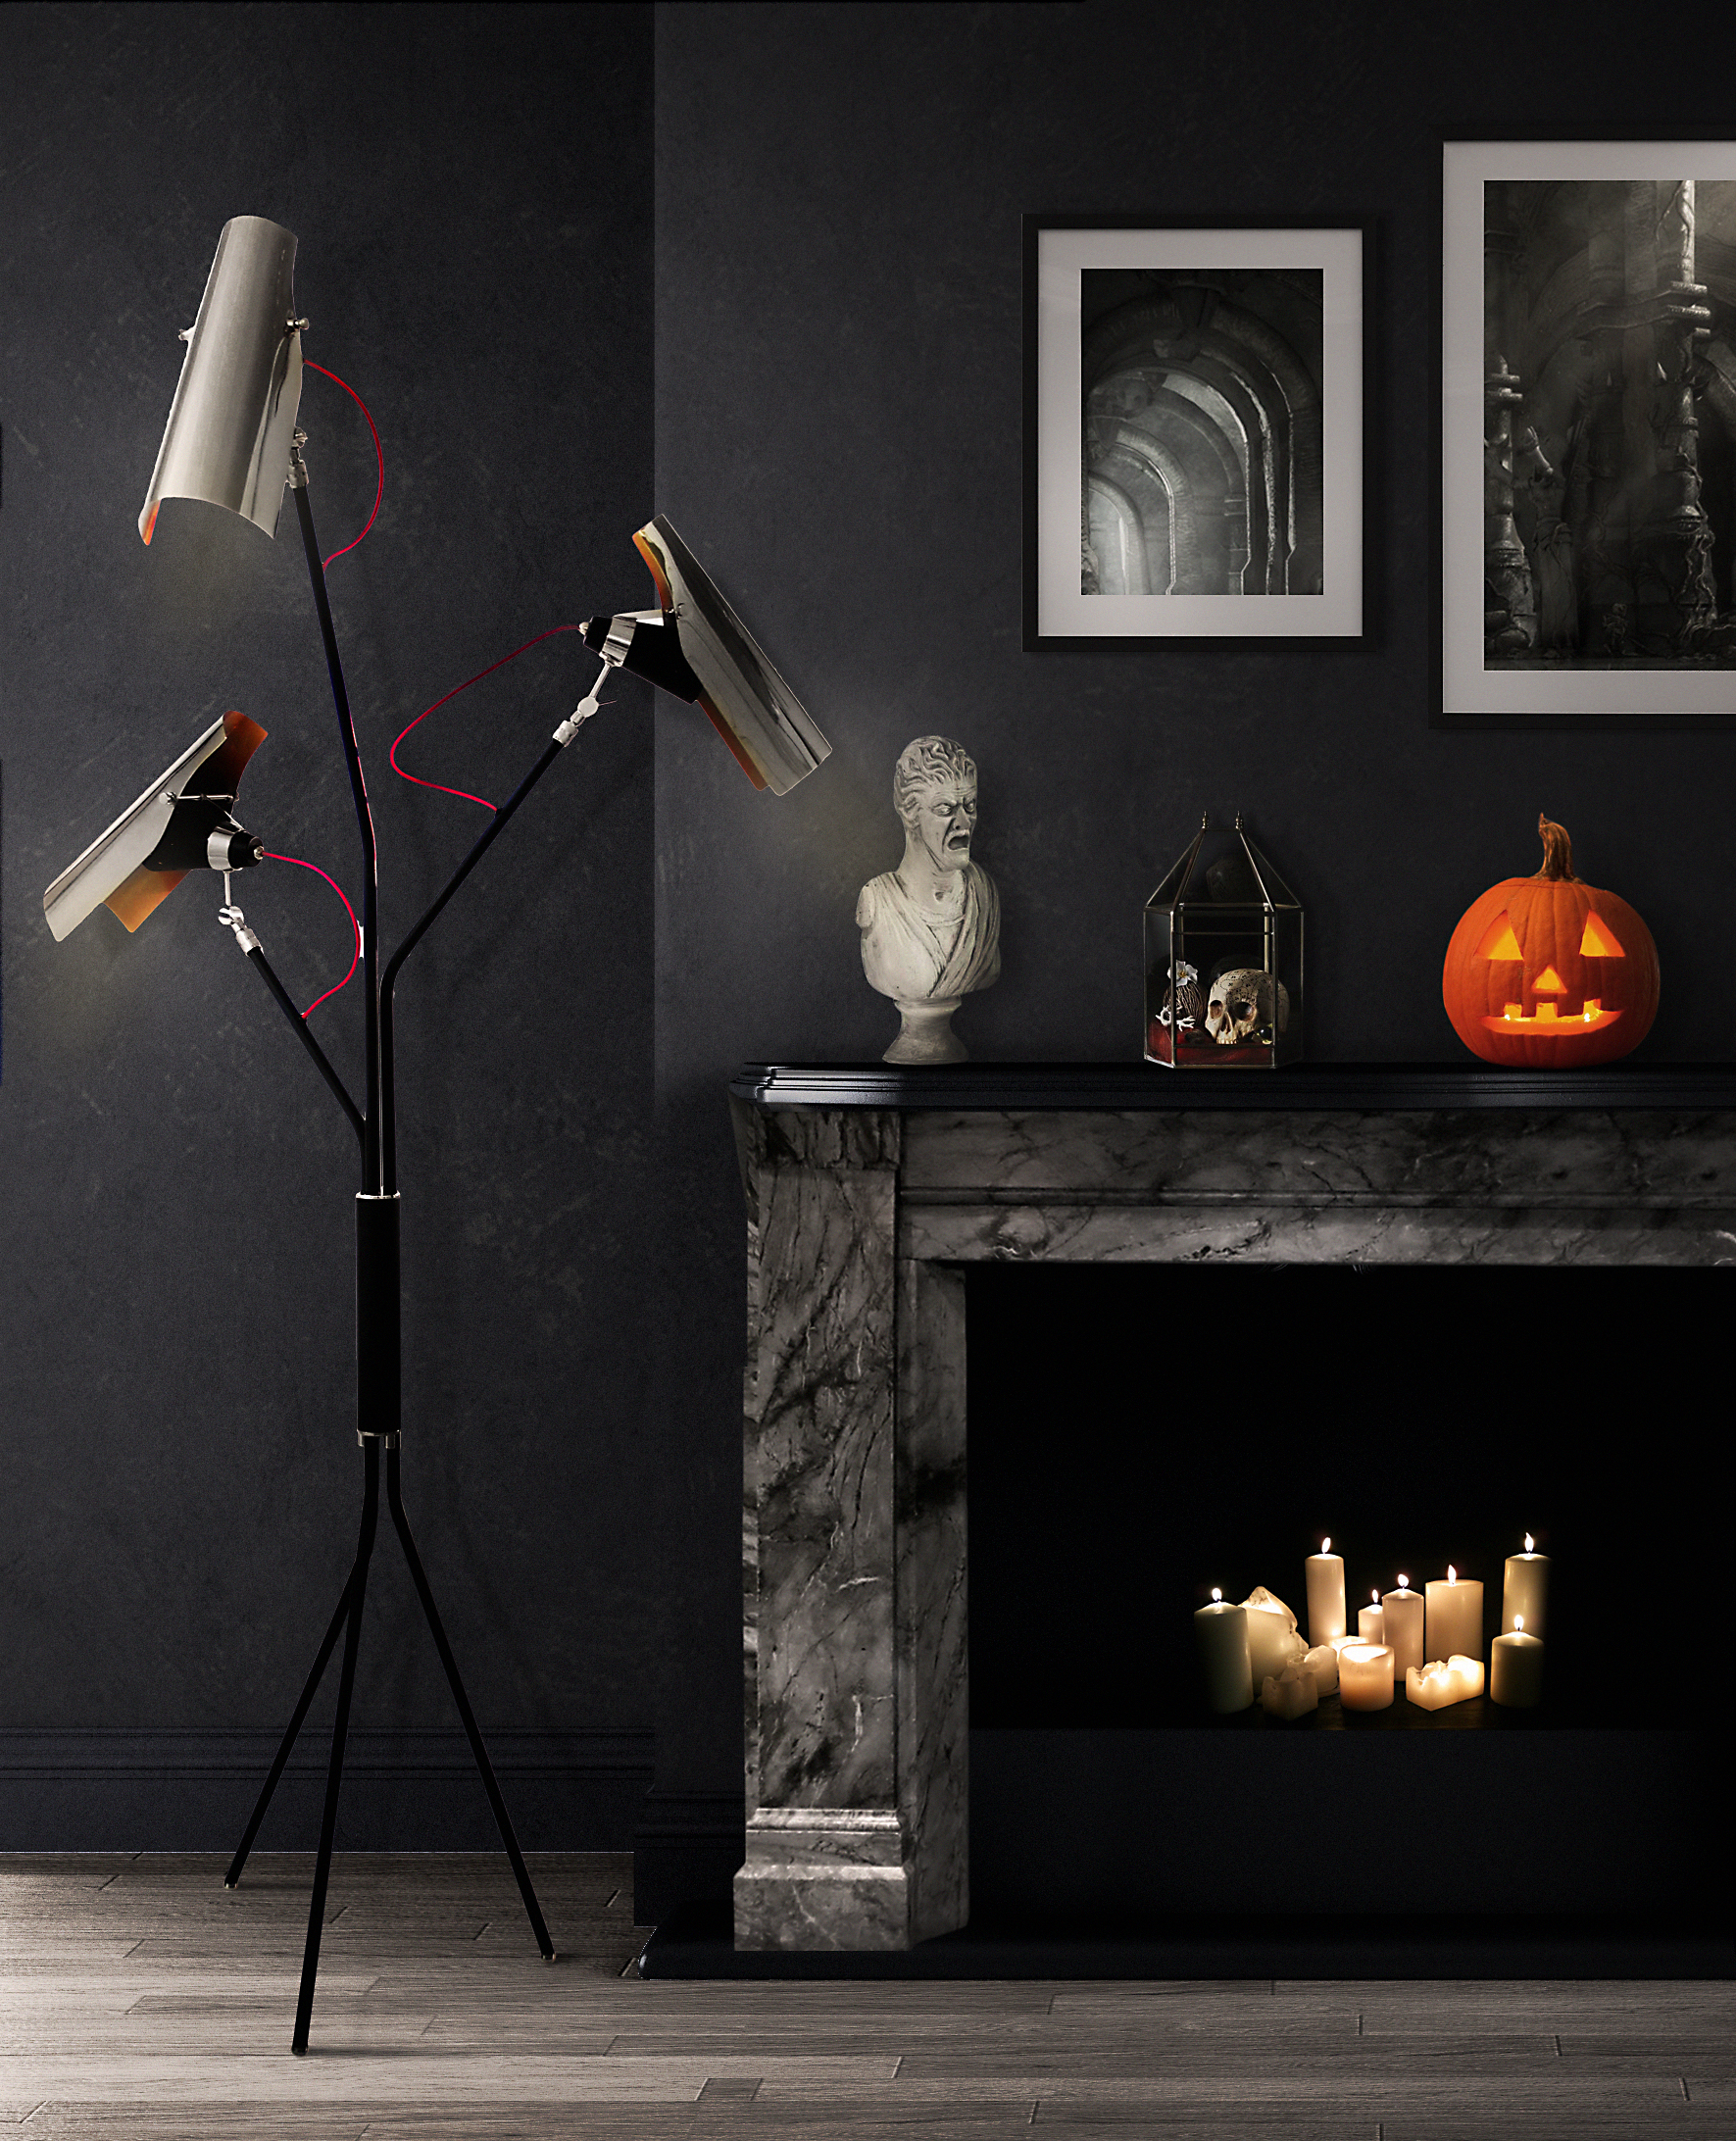 jackson floor lamp jackson floor lamp Jackson Floor Lamp A Halloween Themed Piece Jackson Floor Lamp A Halloween Themed Piece 3